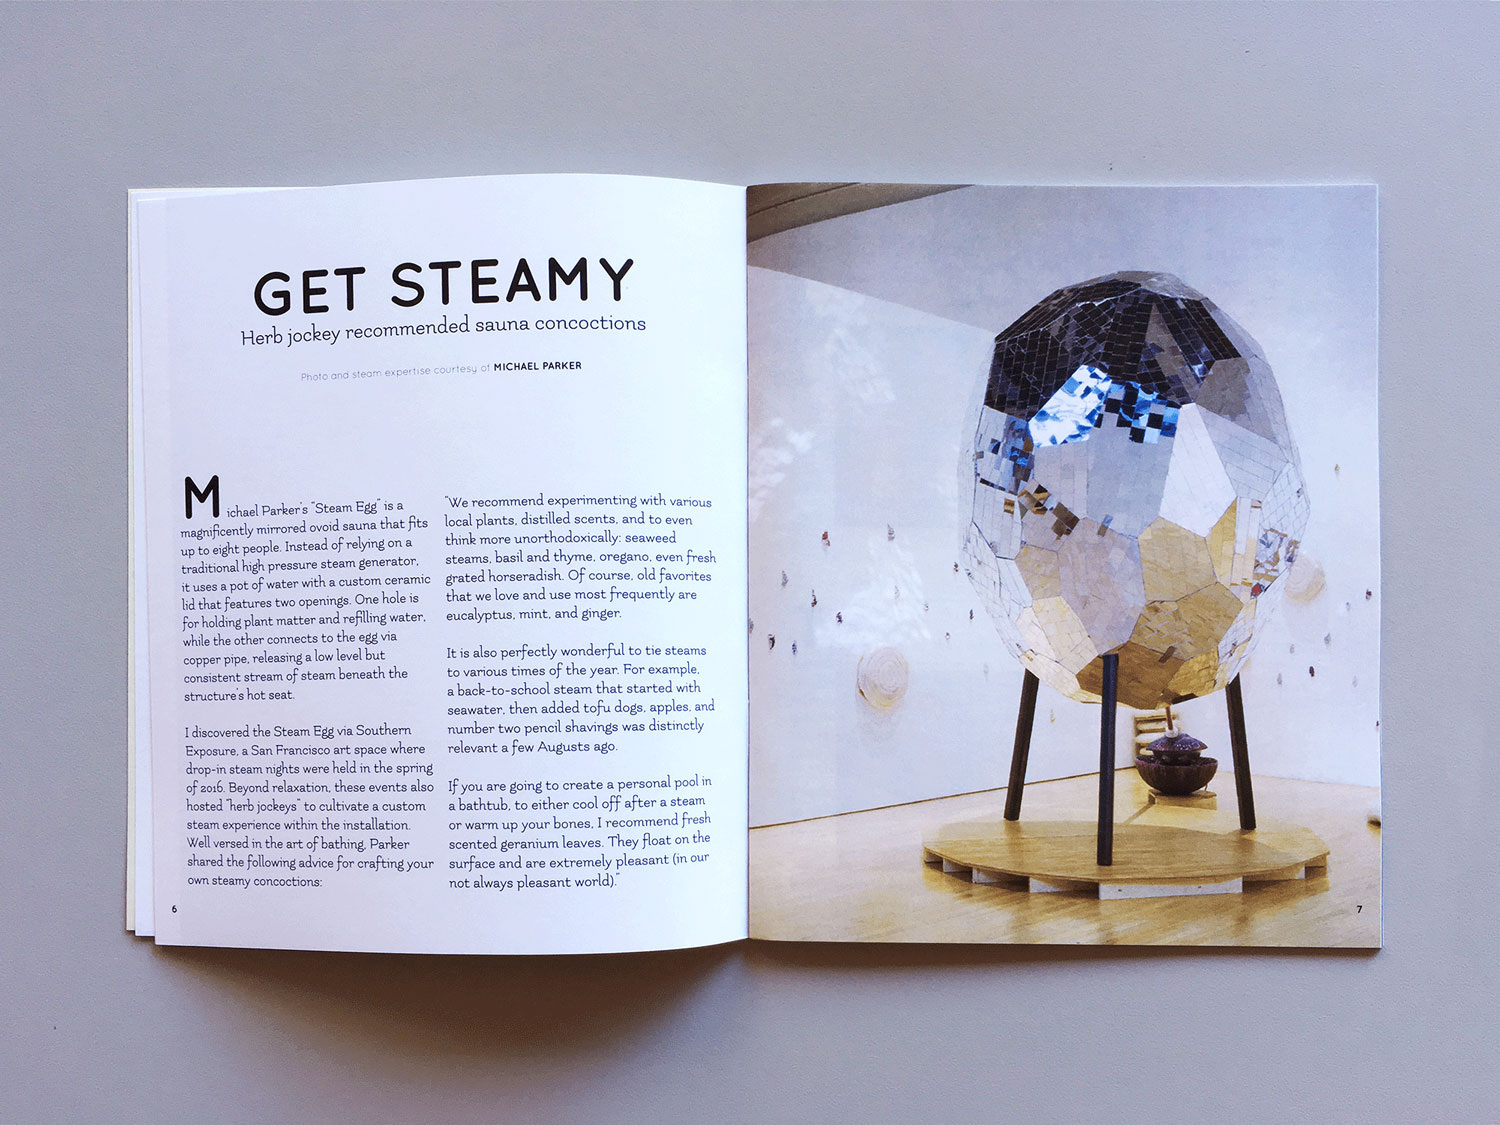 Image link to SPLASH zine. Interior spread of a section called GET STEAMY: herb jockey recommended sauna concoctions. On the right side is a mirrored, egg-shaped sauna